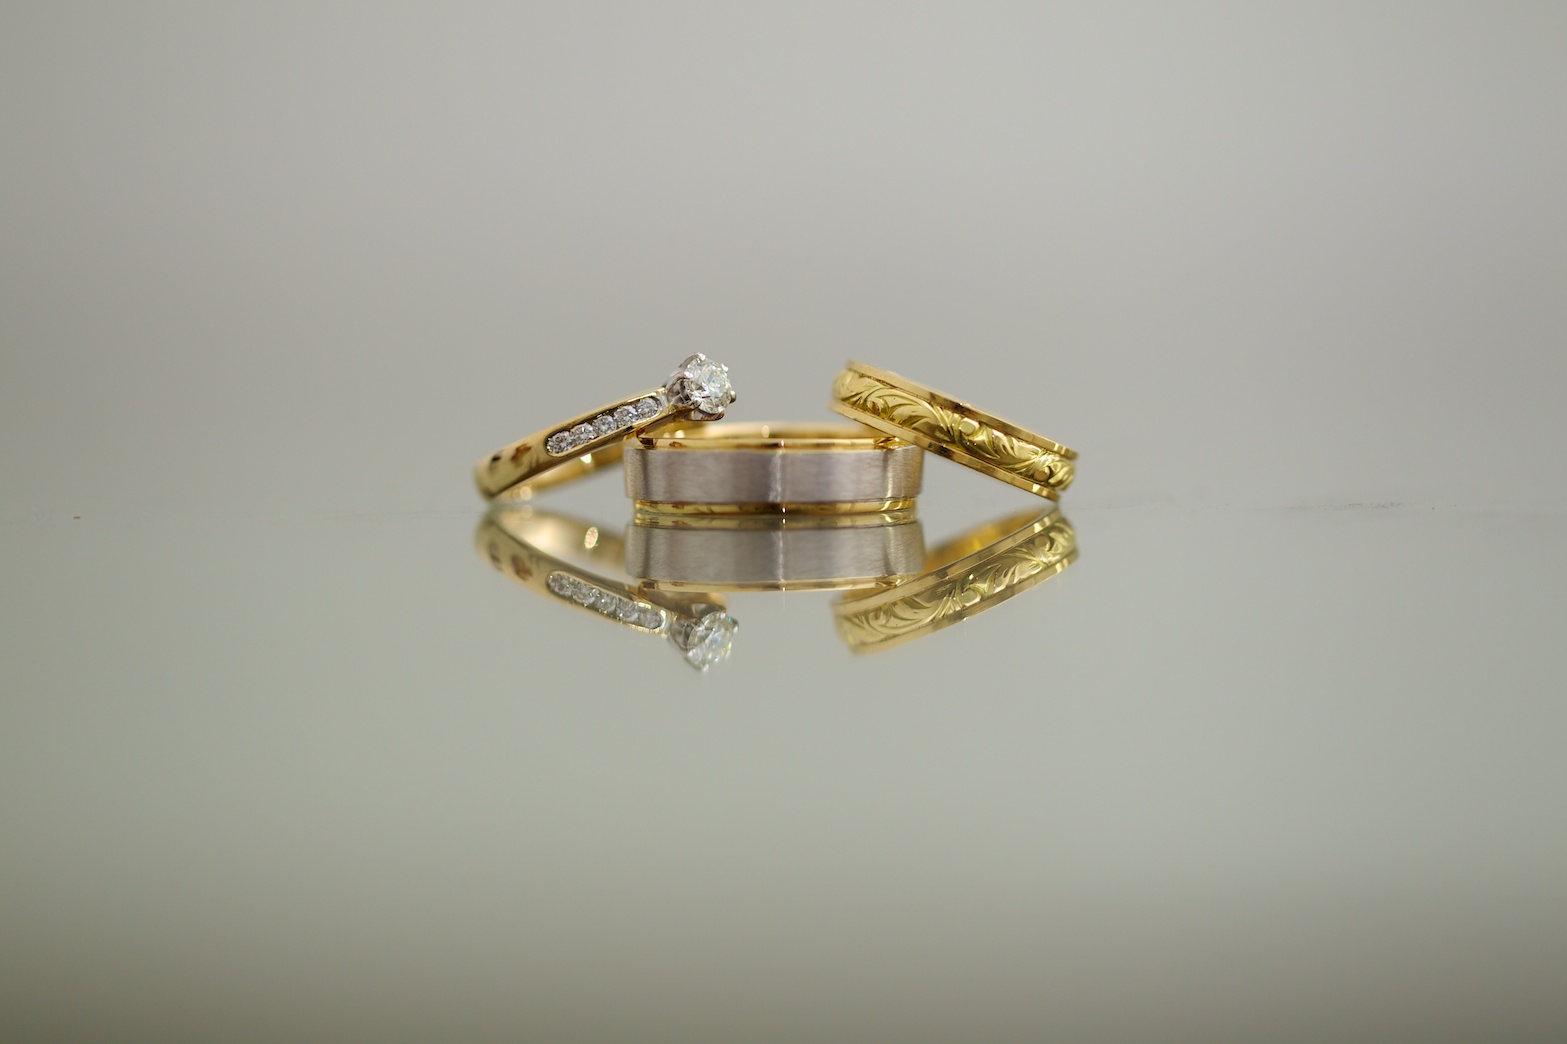 Zoe_Luke_Wedding_Rings 2.jpg